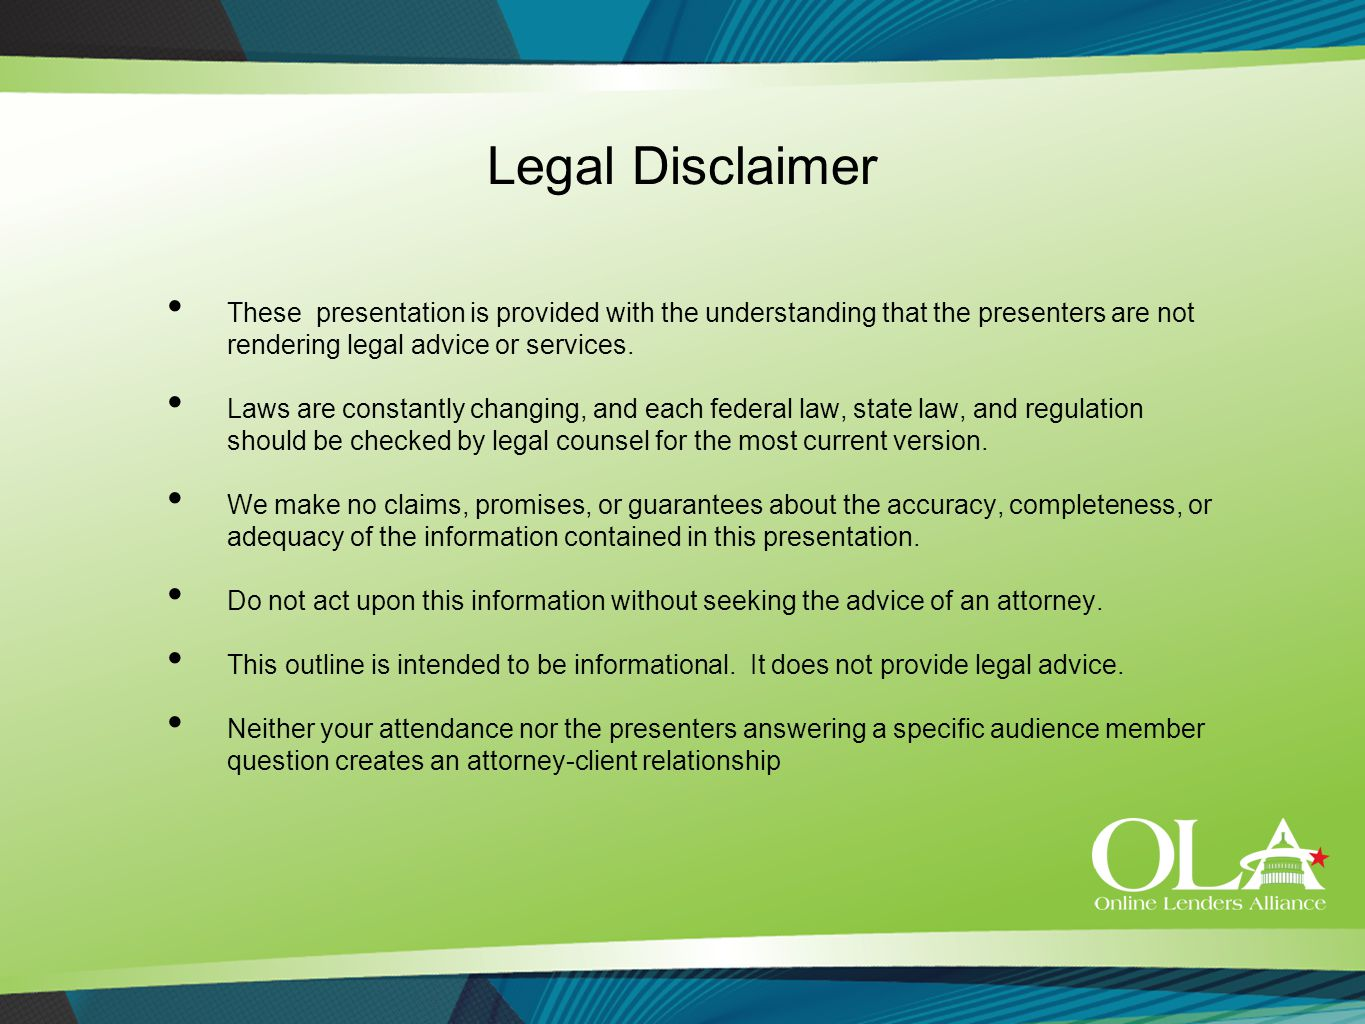 Legal Disclaimer These presentation is provided with the understanding that the presenters are not rendering legal advice or services.